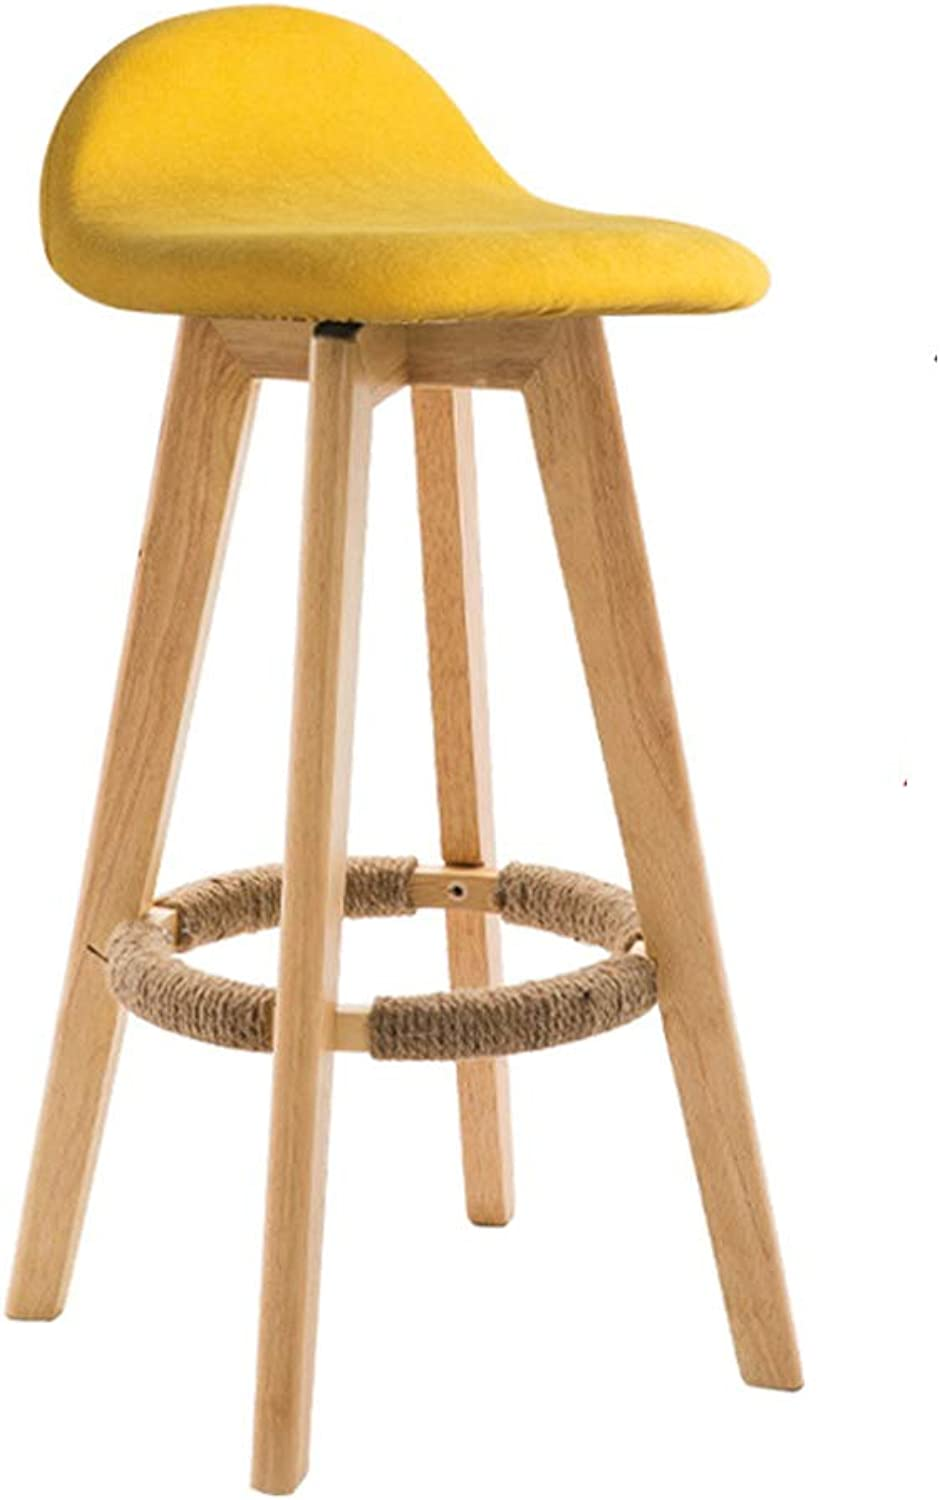 YAN JUNau Bar Stool high Chair Back Linen Cover seat Dining Chair Suitable for Kitchen bar Cafe 4 Solid Wood Legs can Carry 150 kg Sitting Height 63 73 83cm (color   Yellow, Size   73cm)